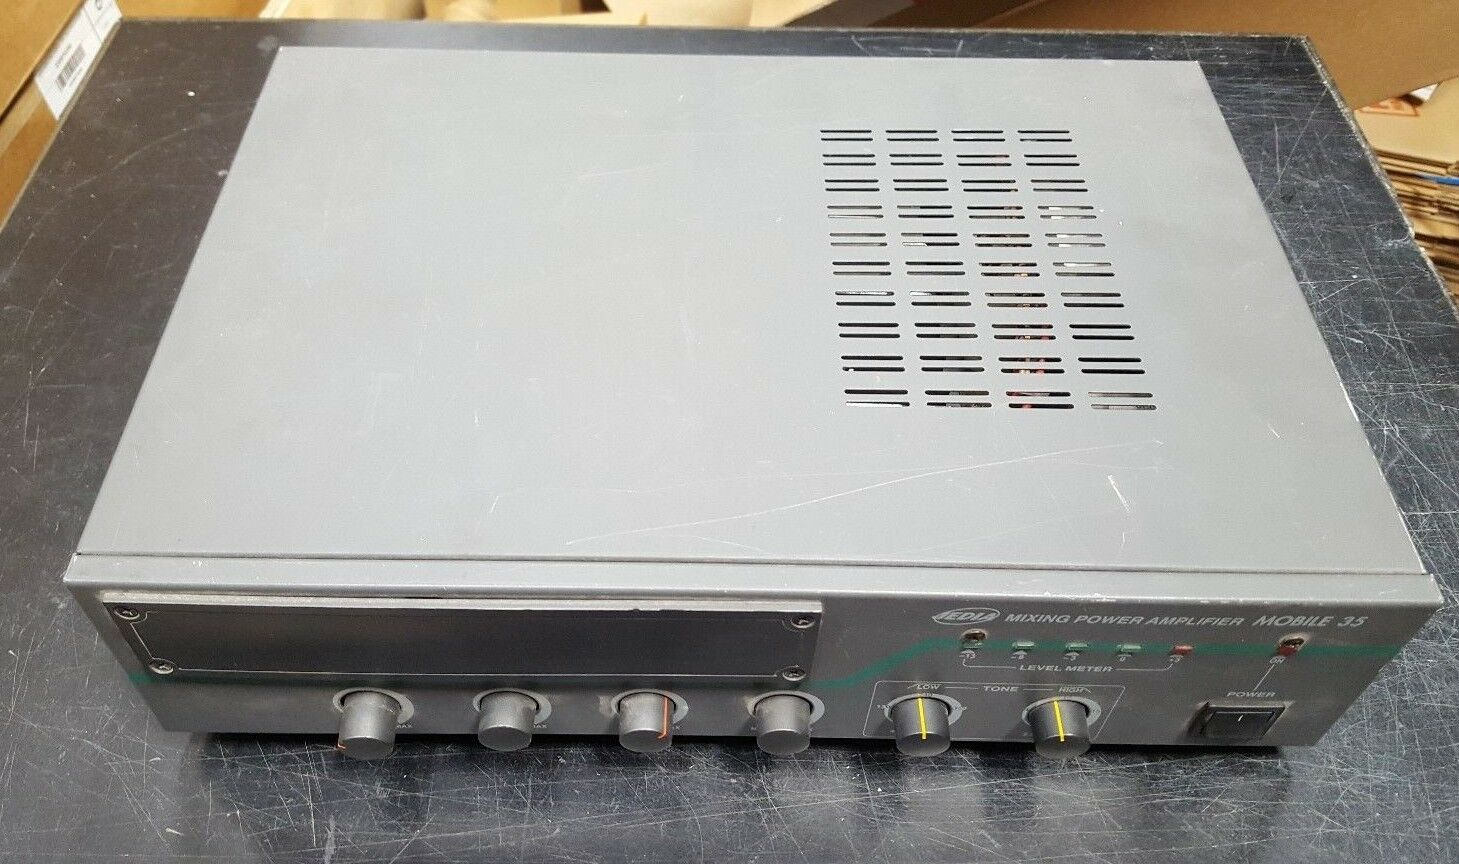 JEDIA MOBILE-35 MIXING POWER AMPLIFIER (R5S8.4)